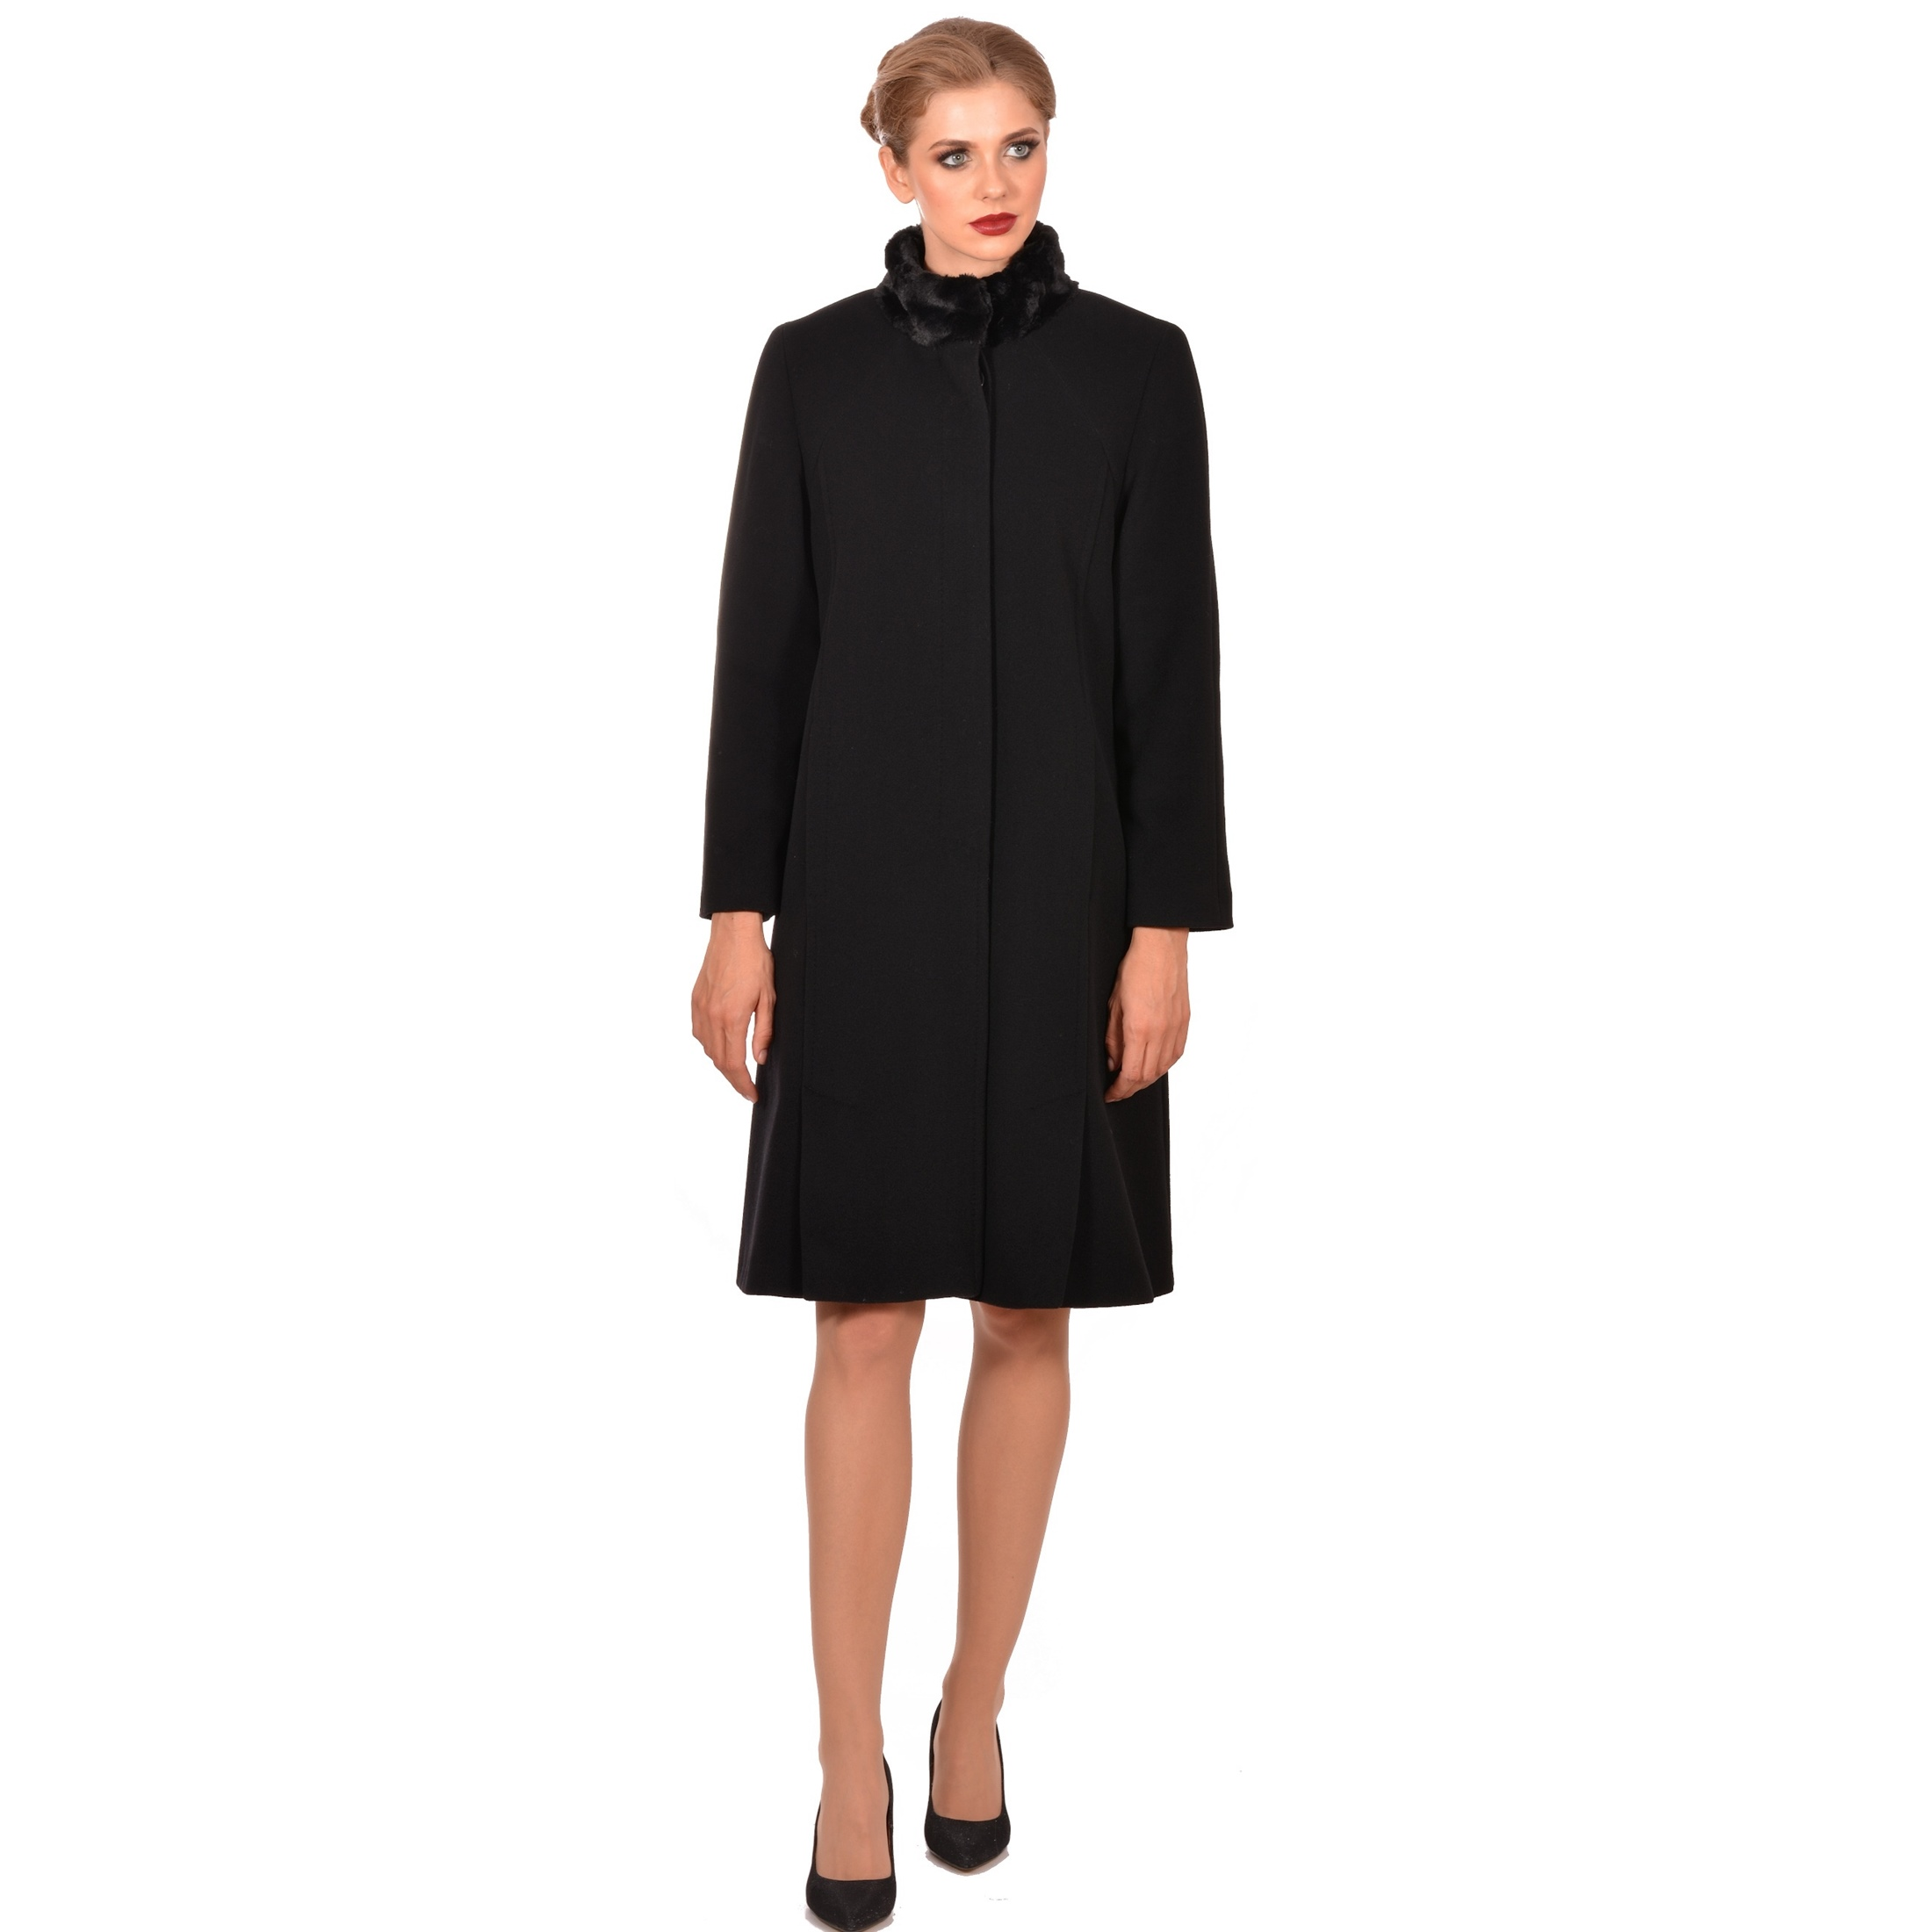 Picture of Women's Coat LADY M - LM40929